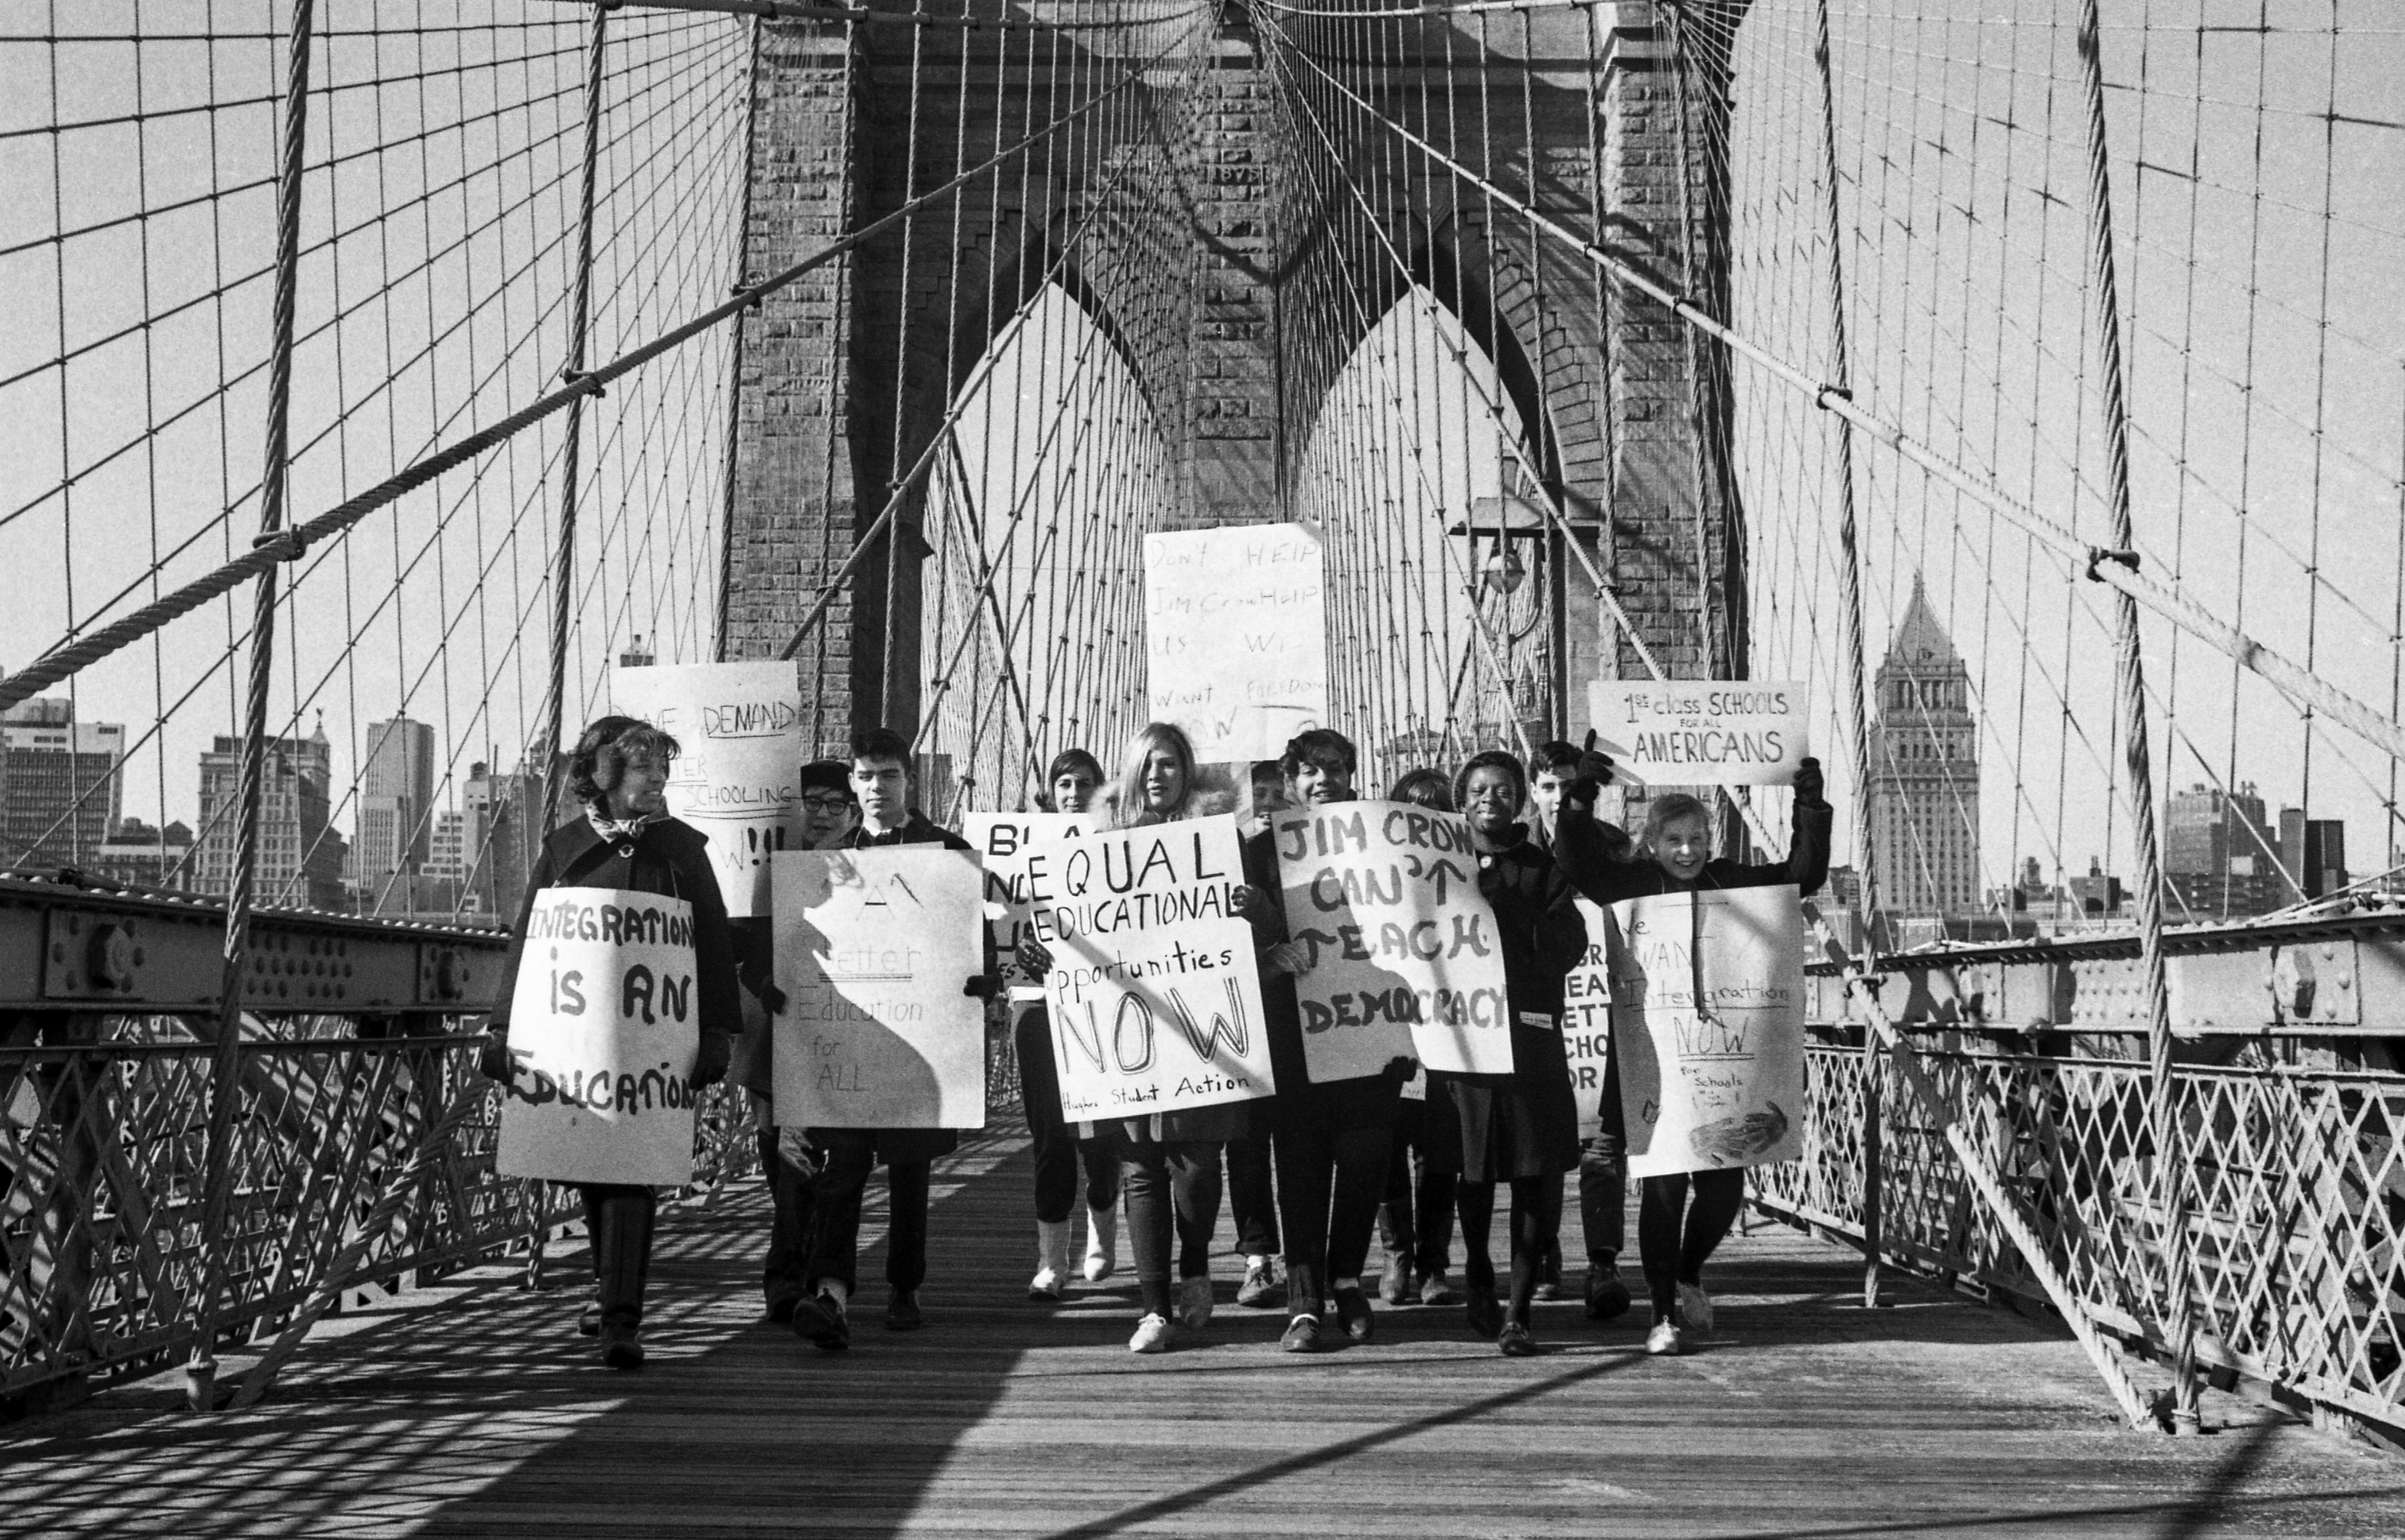 School boycott pickets march across the Brooklyn Bridge en route from City Hall to the Board of Education in Brooklyn on Feb. 3, 1964, to continue their demonstration against de facto segregation in the city's school system.